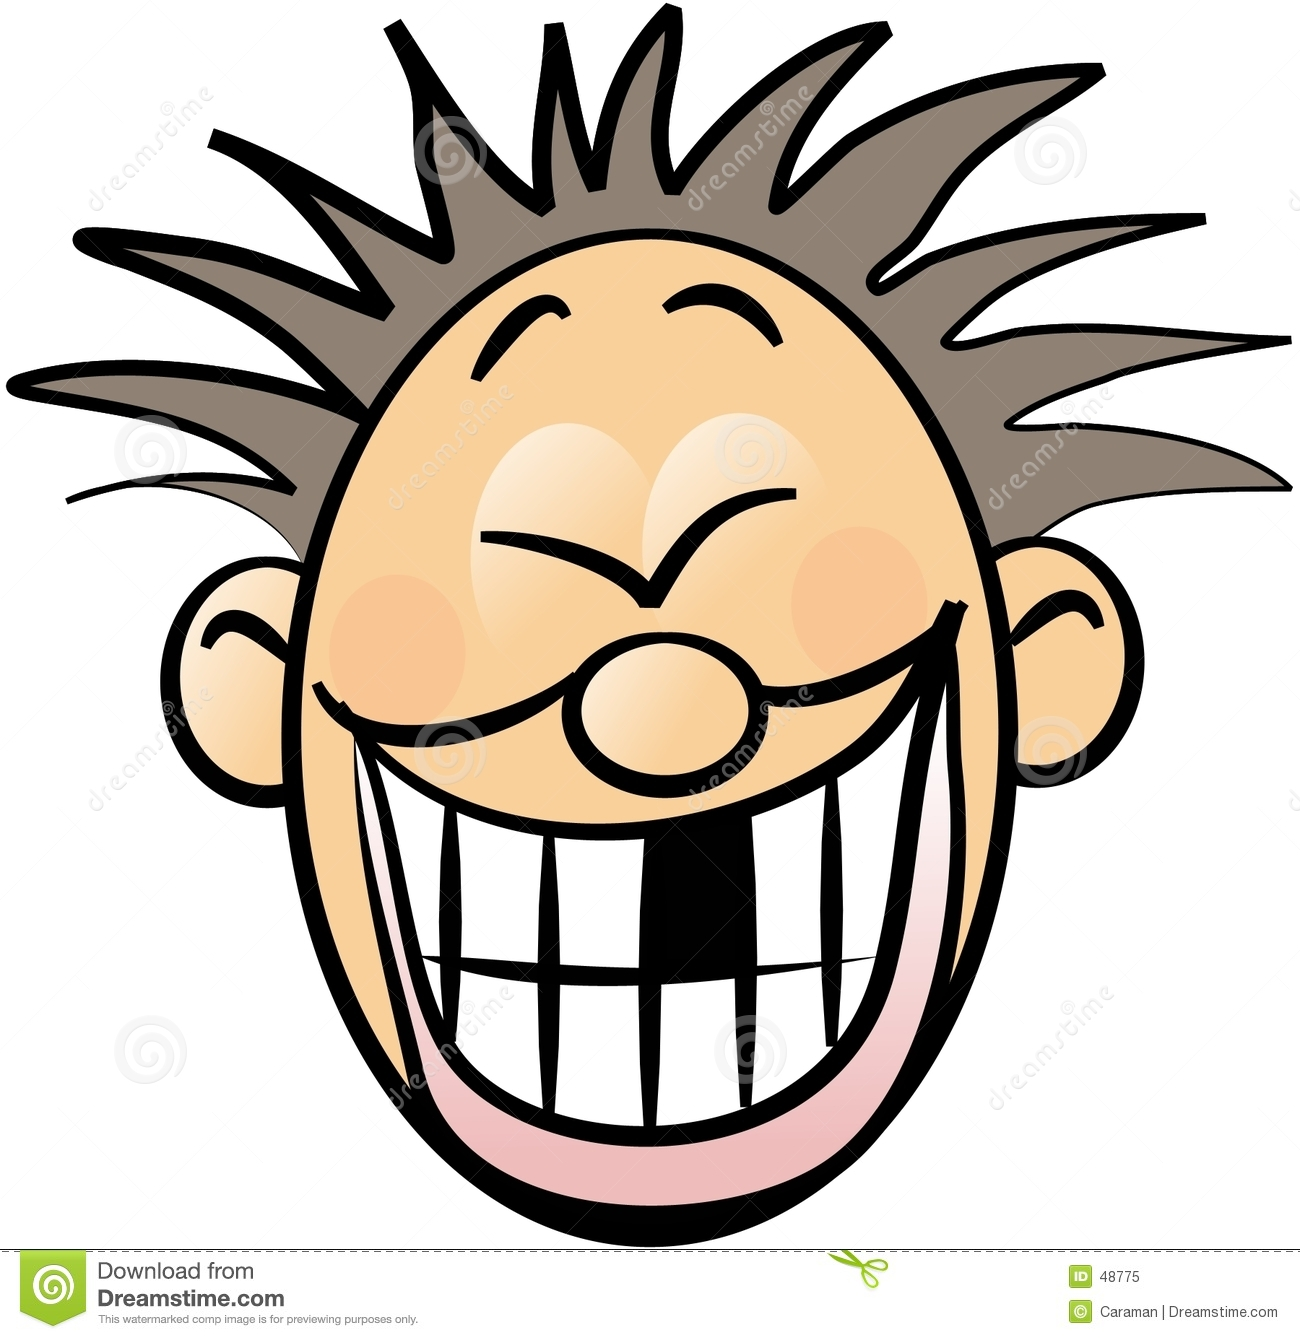 Comic faces clipart clipart free Silly Face Cartoon Clipart | Free download best Silly Face Cartoon ... clipart free